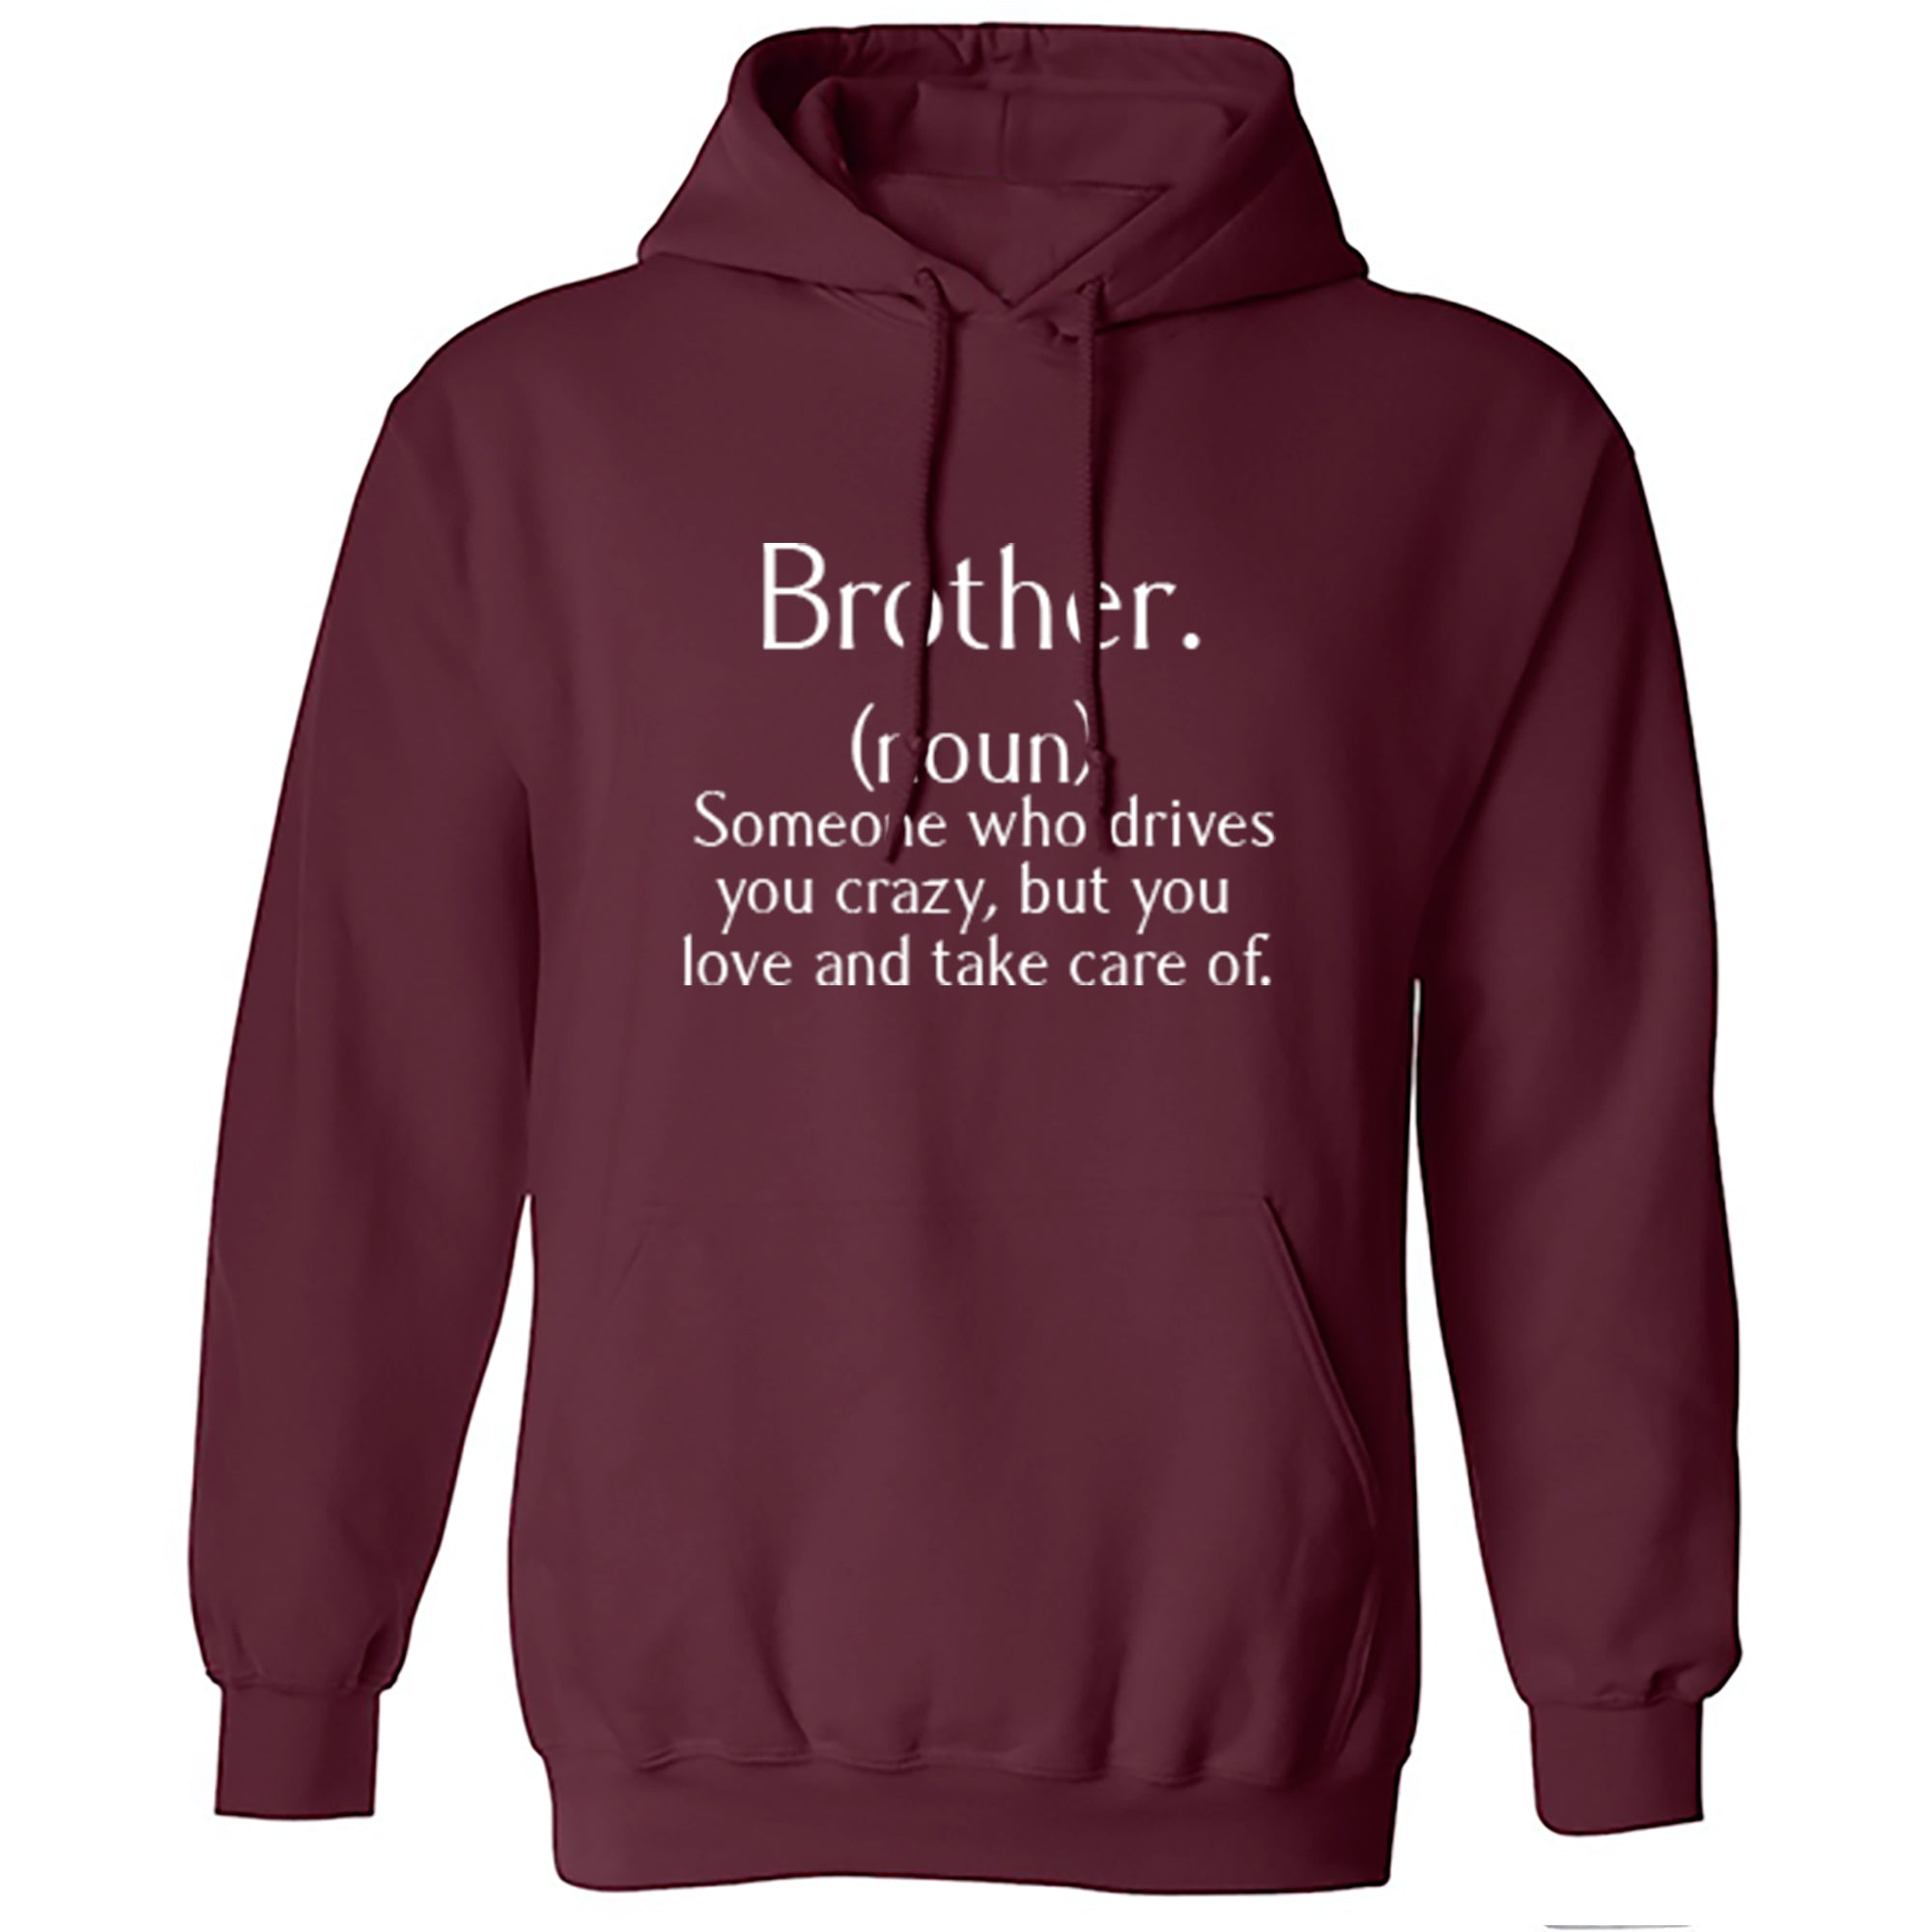 Brother Definition Unisex Hoodie S0313 - Illustrated Identity Ltd.